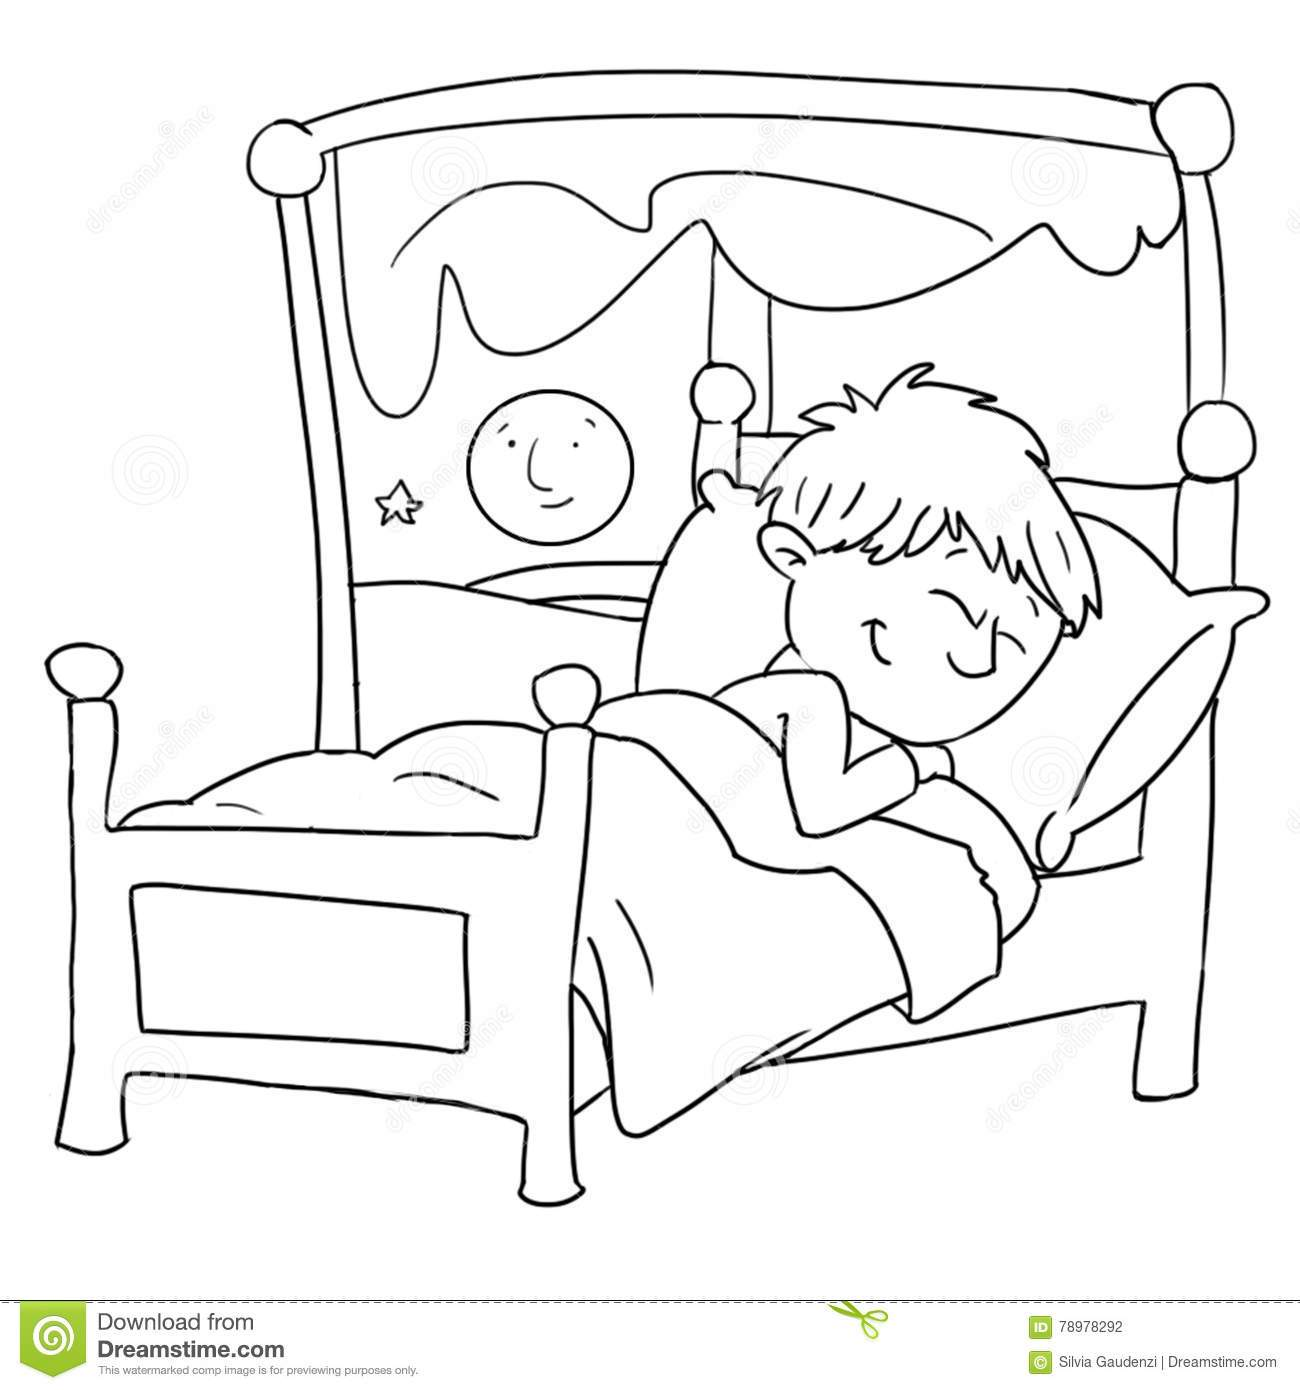 Sleep black and white clipart clip art freeuse library Sleeping child clipart black and white 1 » Clipart Portal clip art freeuse library